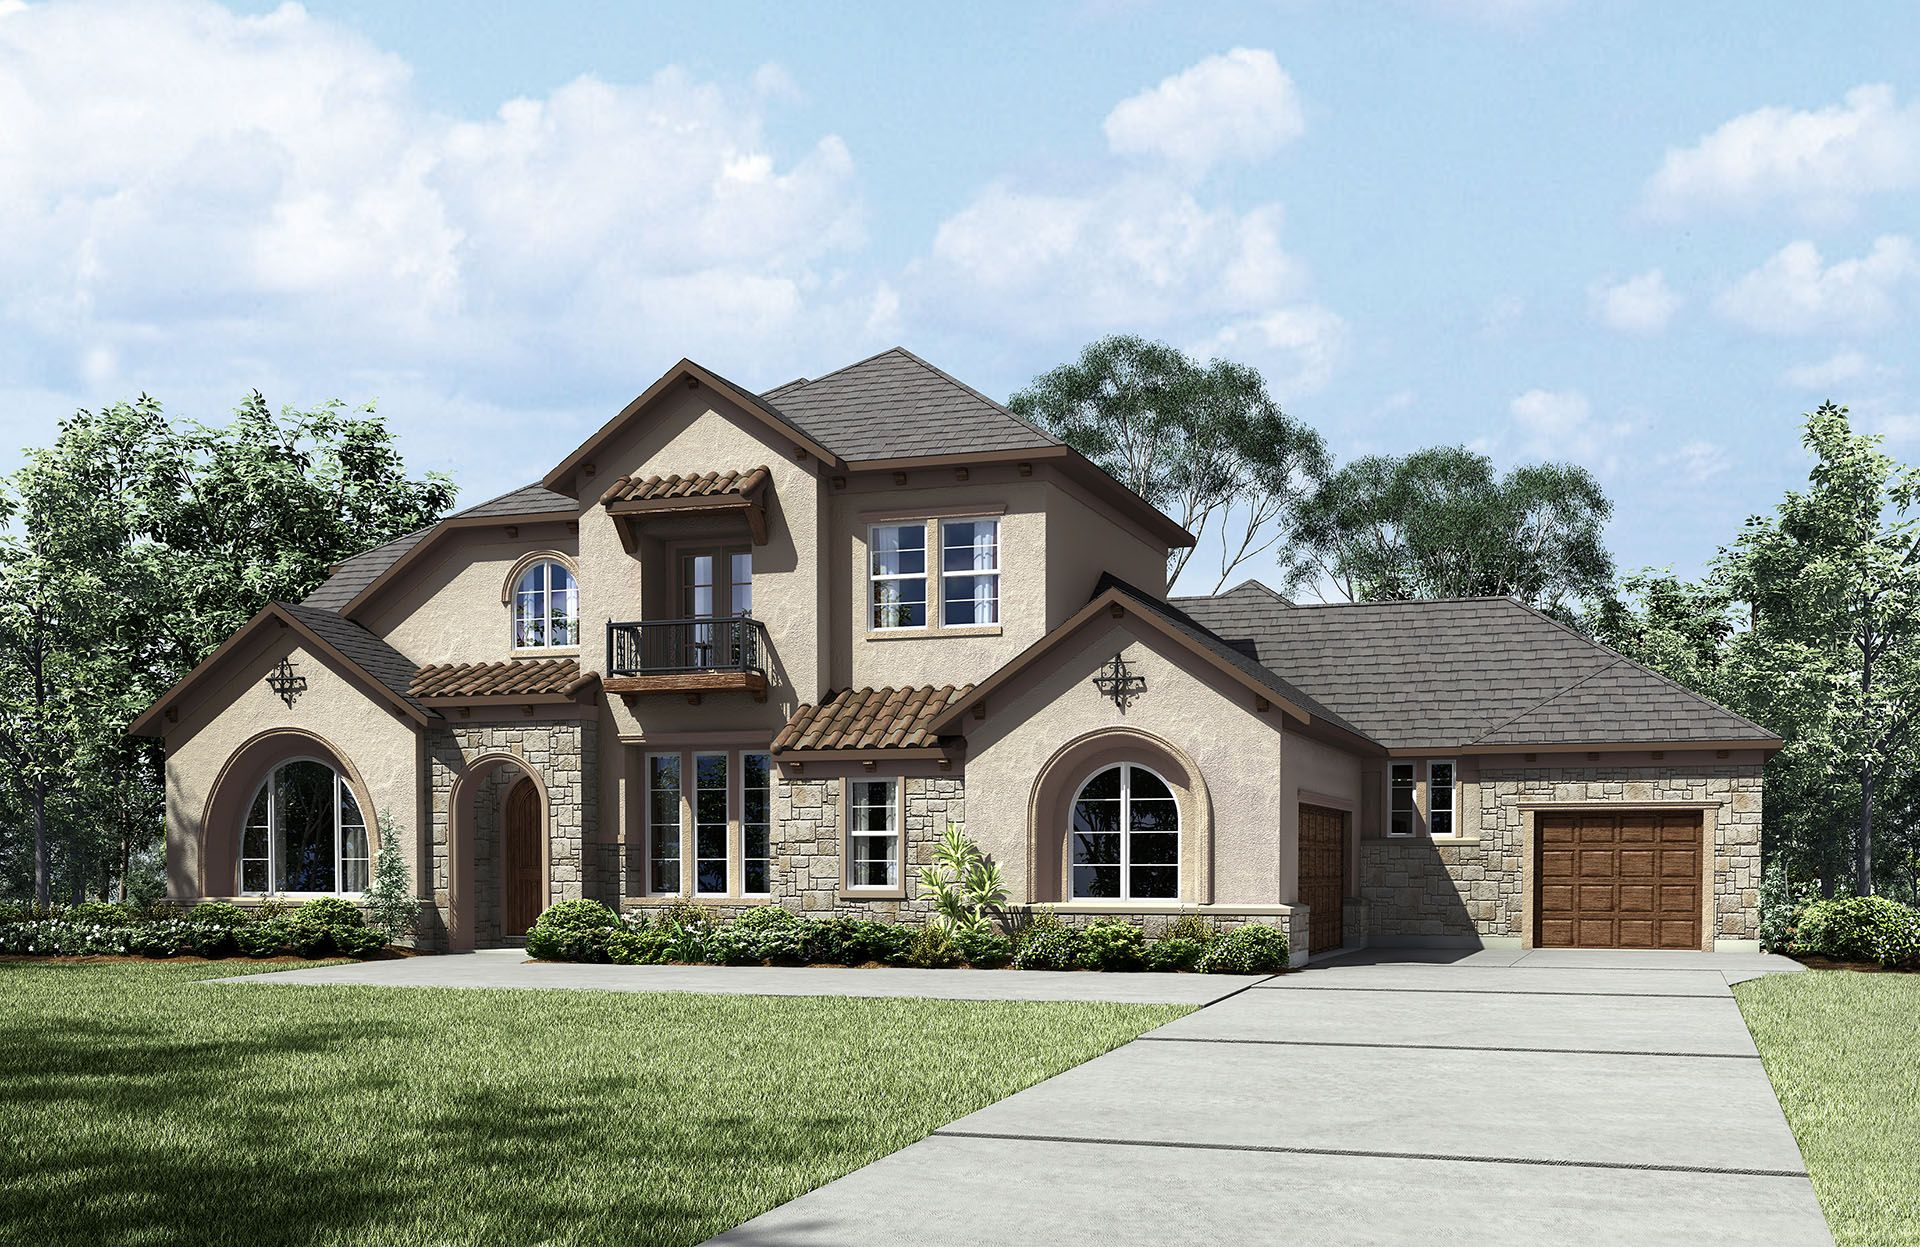 Single Family for Active at The Hollows - Colinas Ii 19404 Spelndor Court Jonestown, Texas 78645 United States